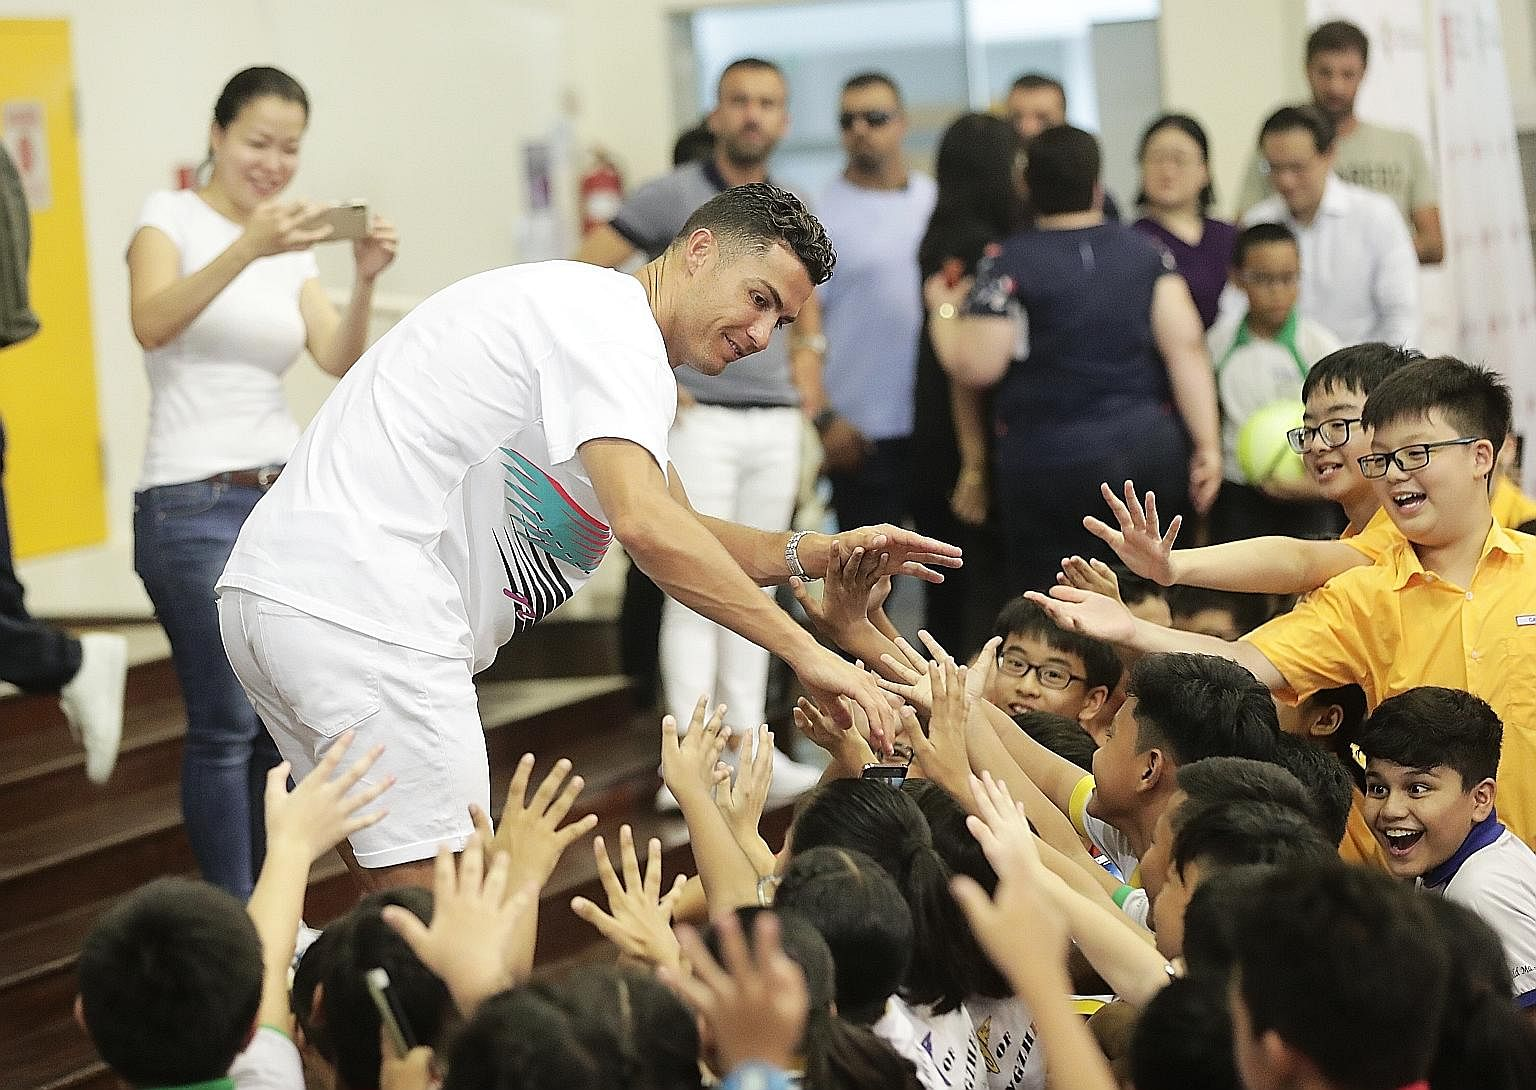 Portuguese football superstar Cristiano Ronaldo was at his charming best as he mingled with 1,000 upper primary pupils from Yumin and Chongzheng primary schools during a surprise visit to Yumin yesterday. Capturing the moment is Tampines GRC MP Cheng